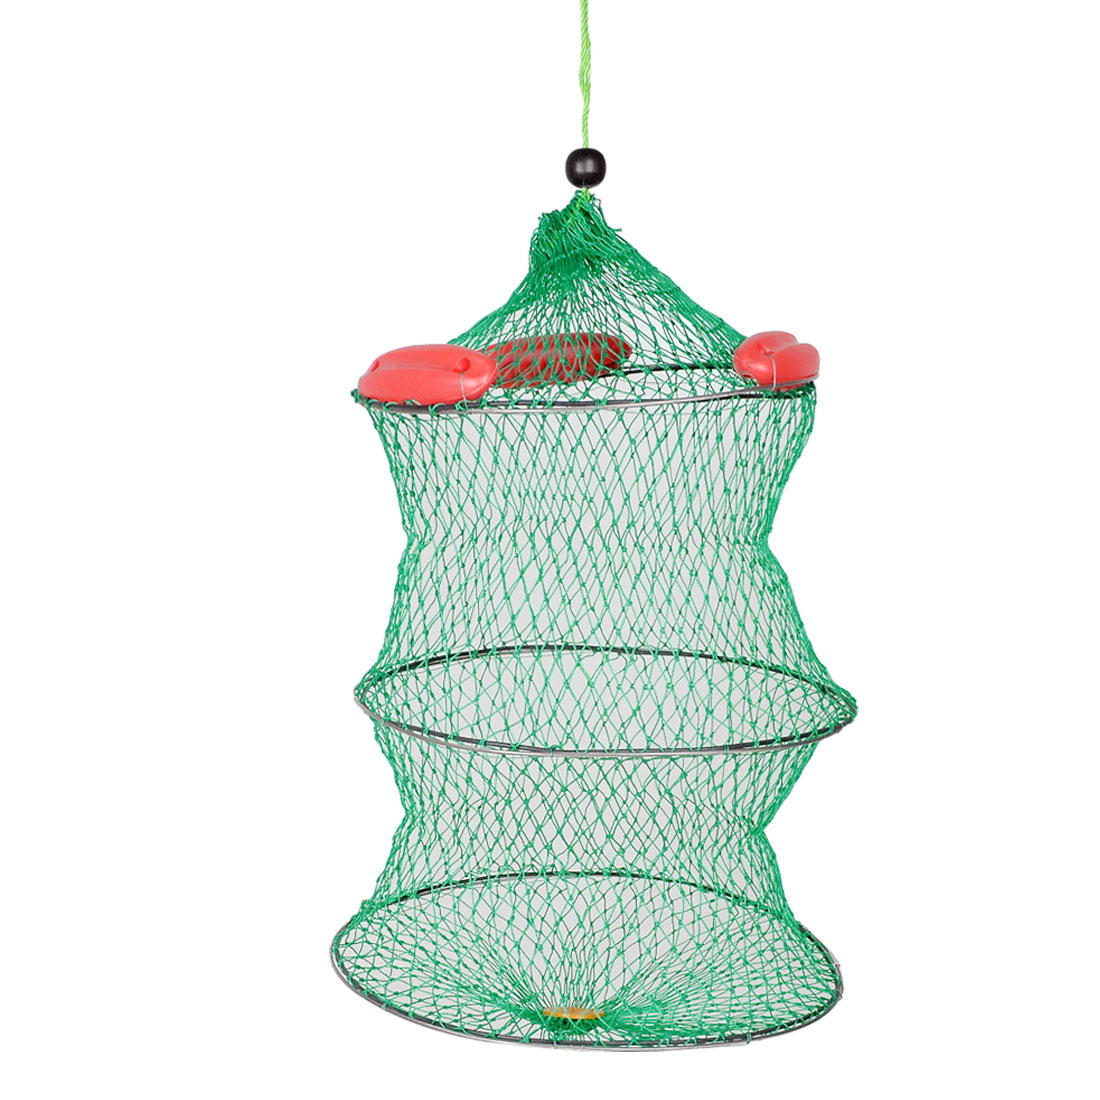 "Unique Bargains 15.7"" x 21.2"" 2 Layers Collapsible Foldable Fishing Landing Net Fish Basket for Fishermen Green Red"